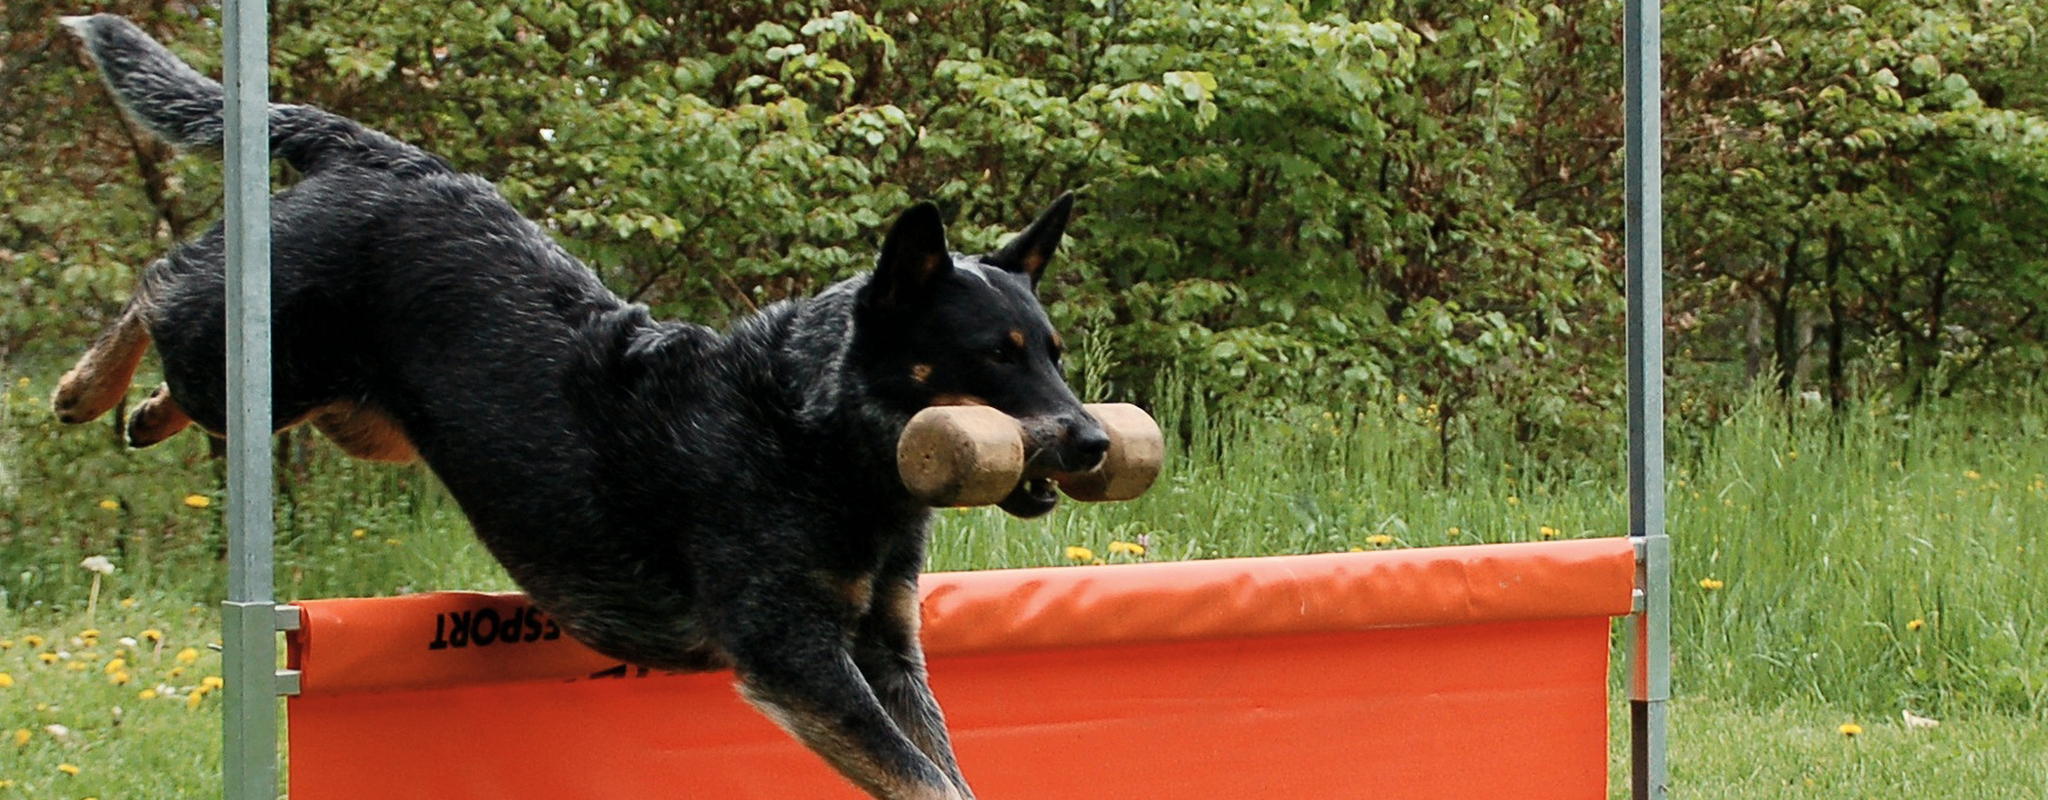 Dog leaping over obstacle with obedience barbell